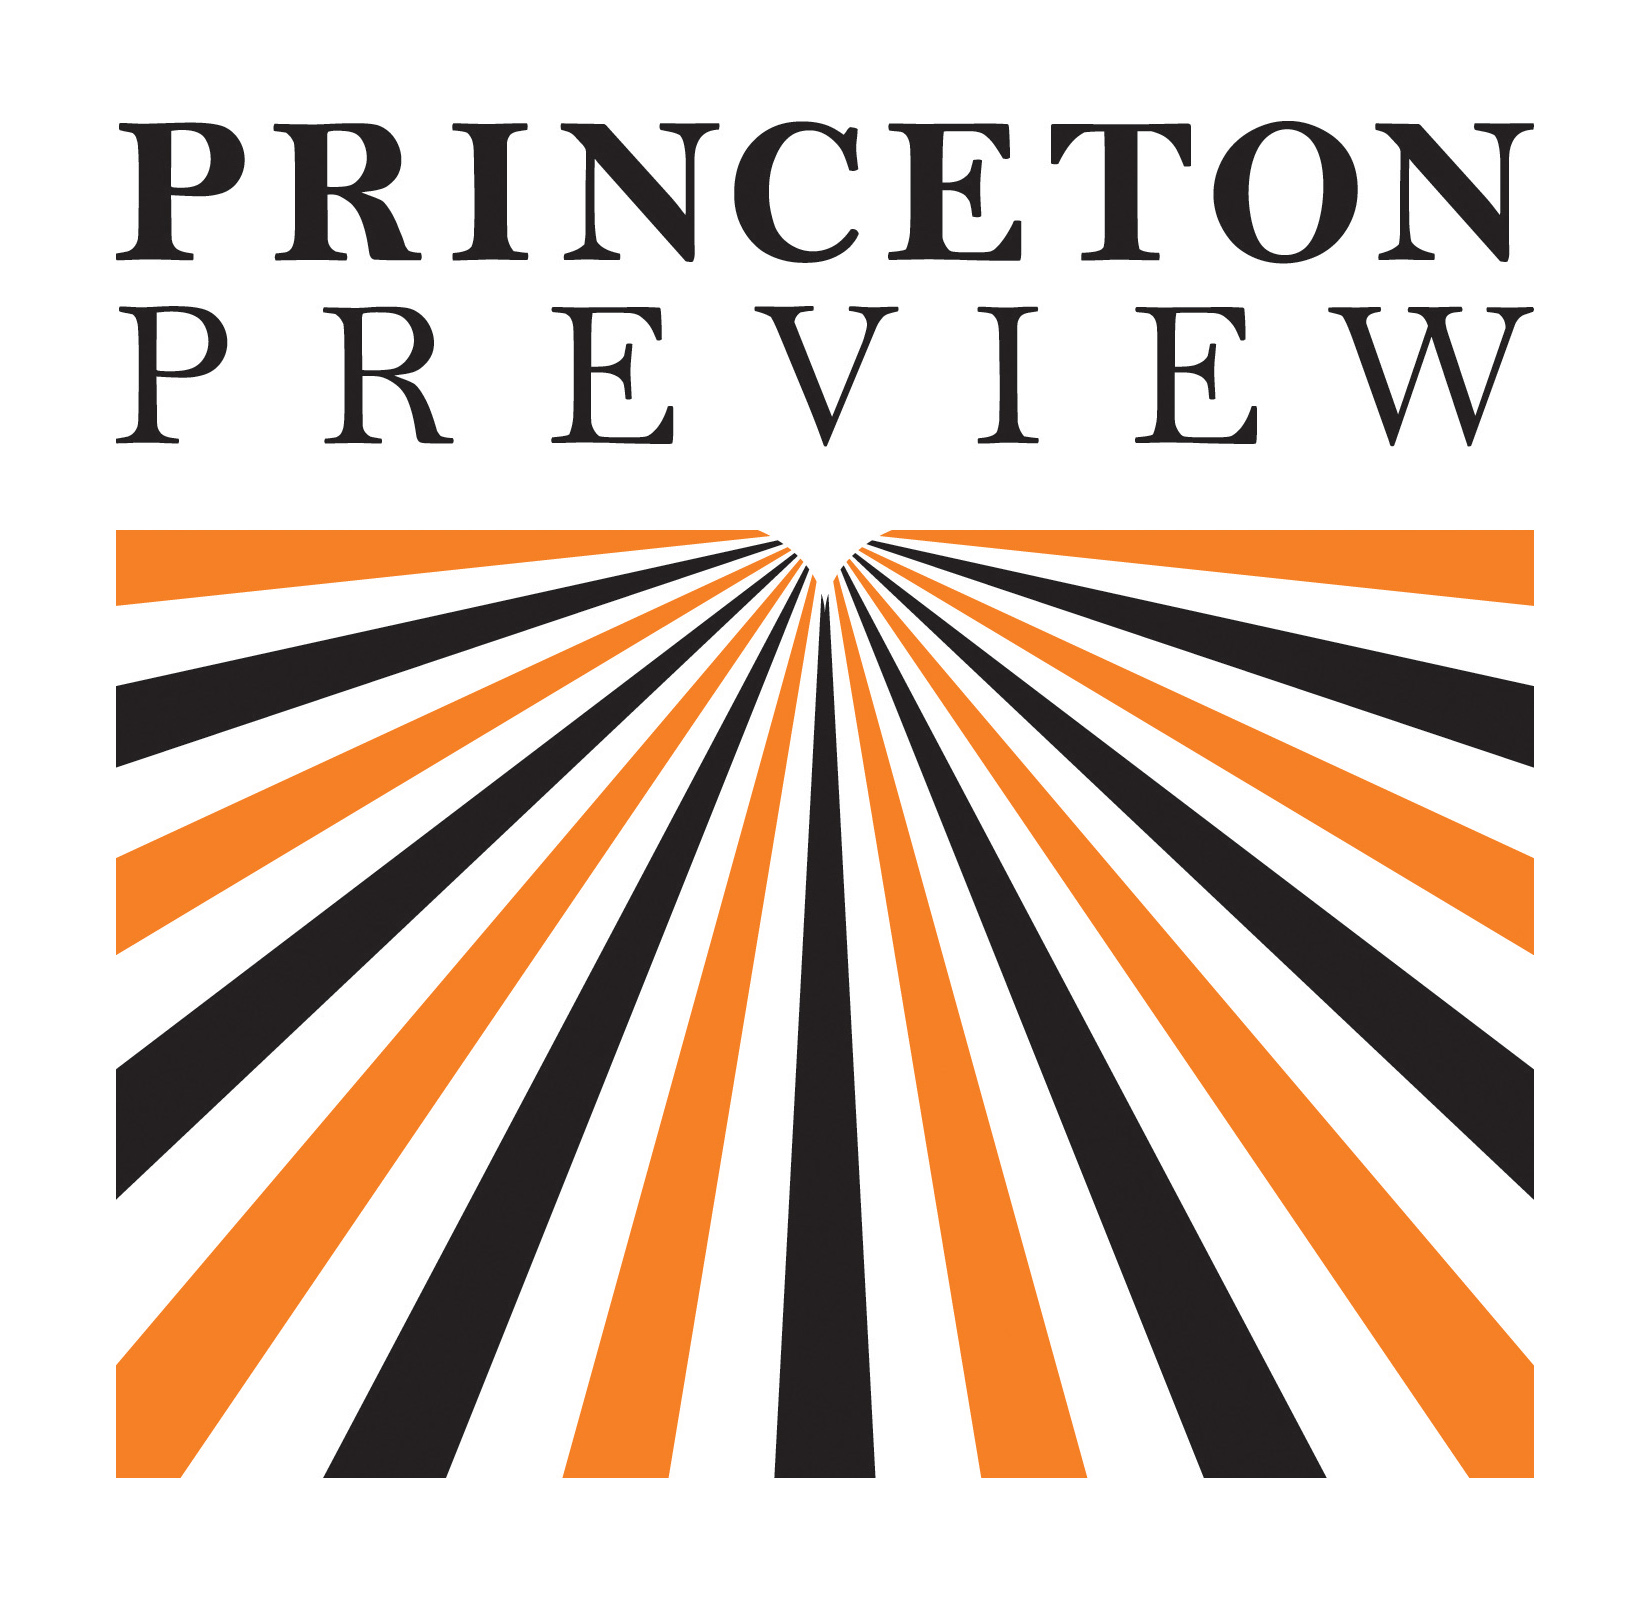 PrincetonPreview